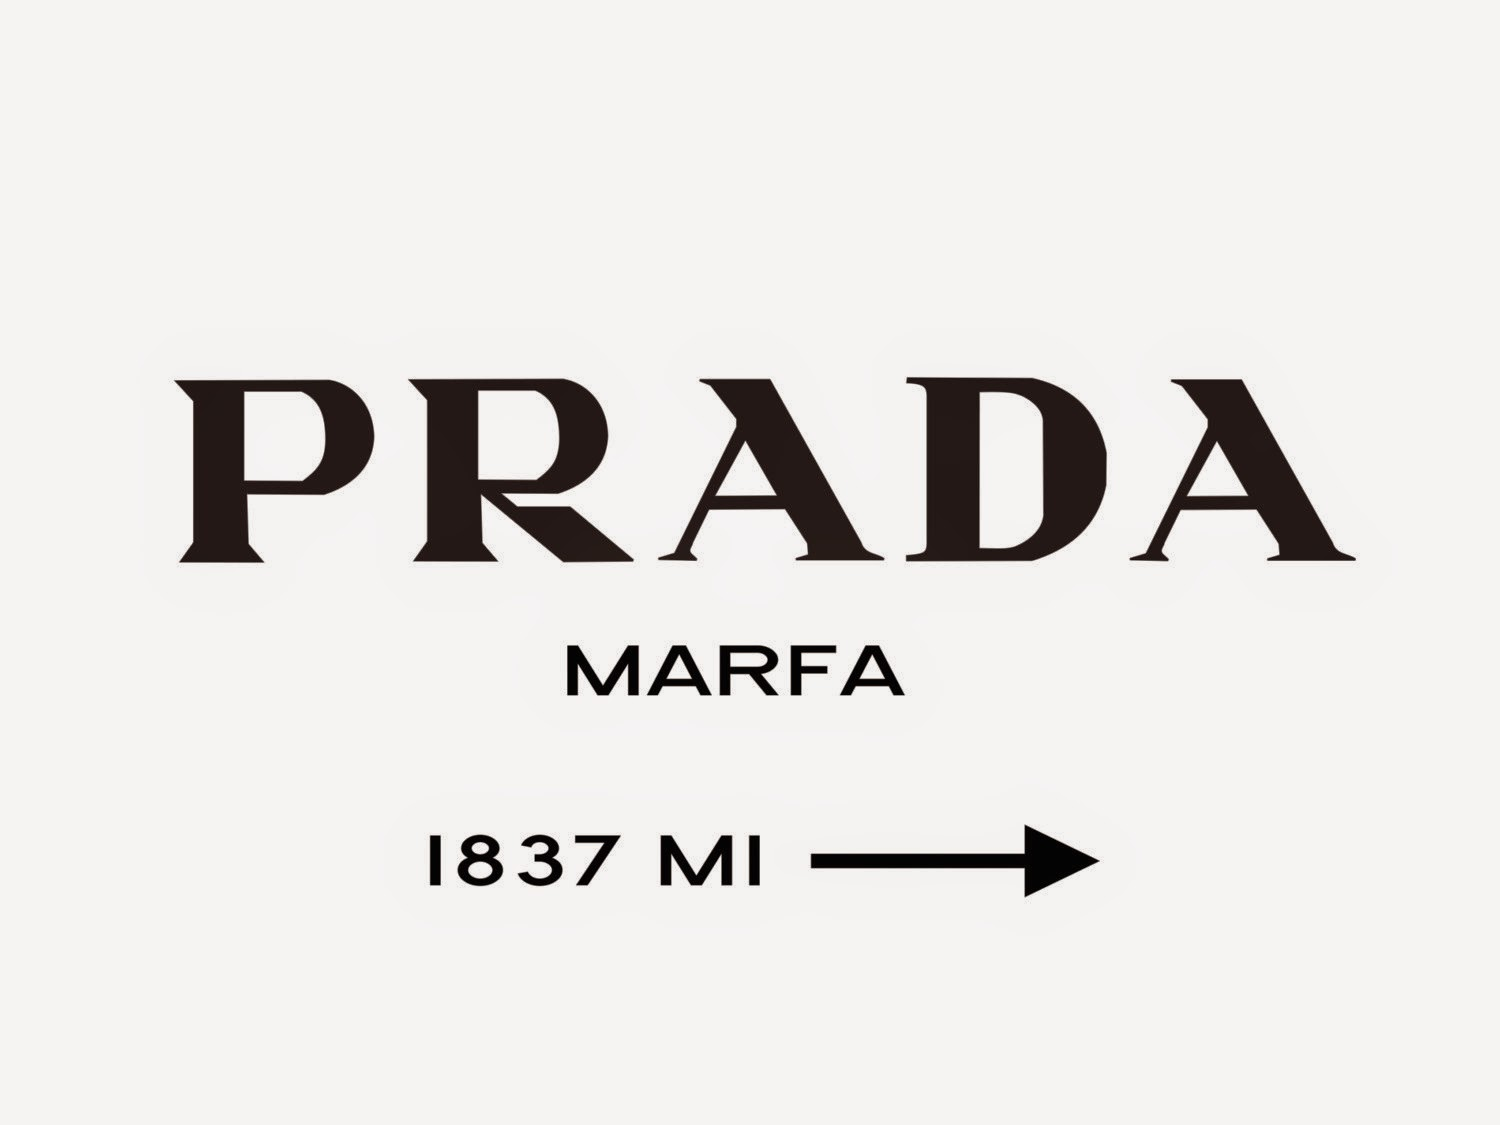 nadine sarah diy prada marfa by gossip girl. Black Bedroom Furniture Sets. Home Design Ideas